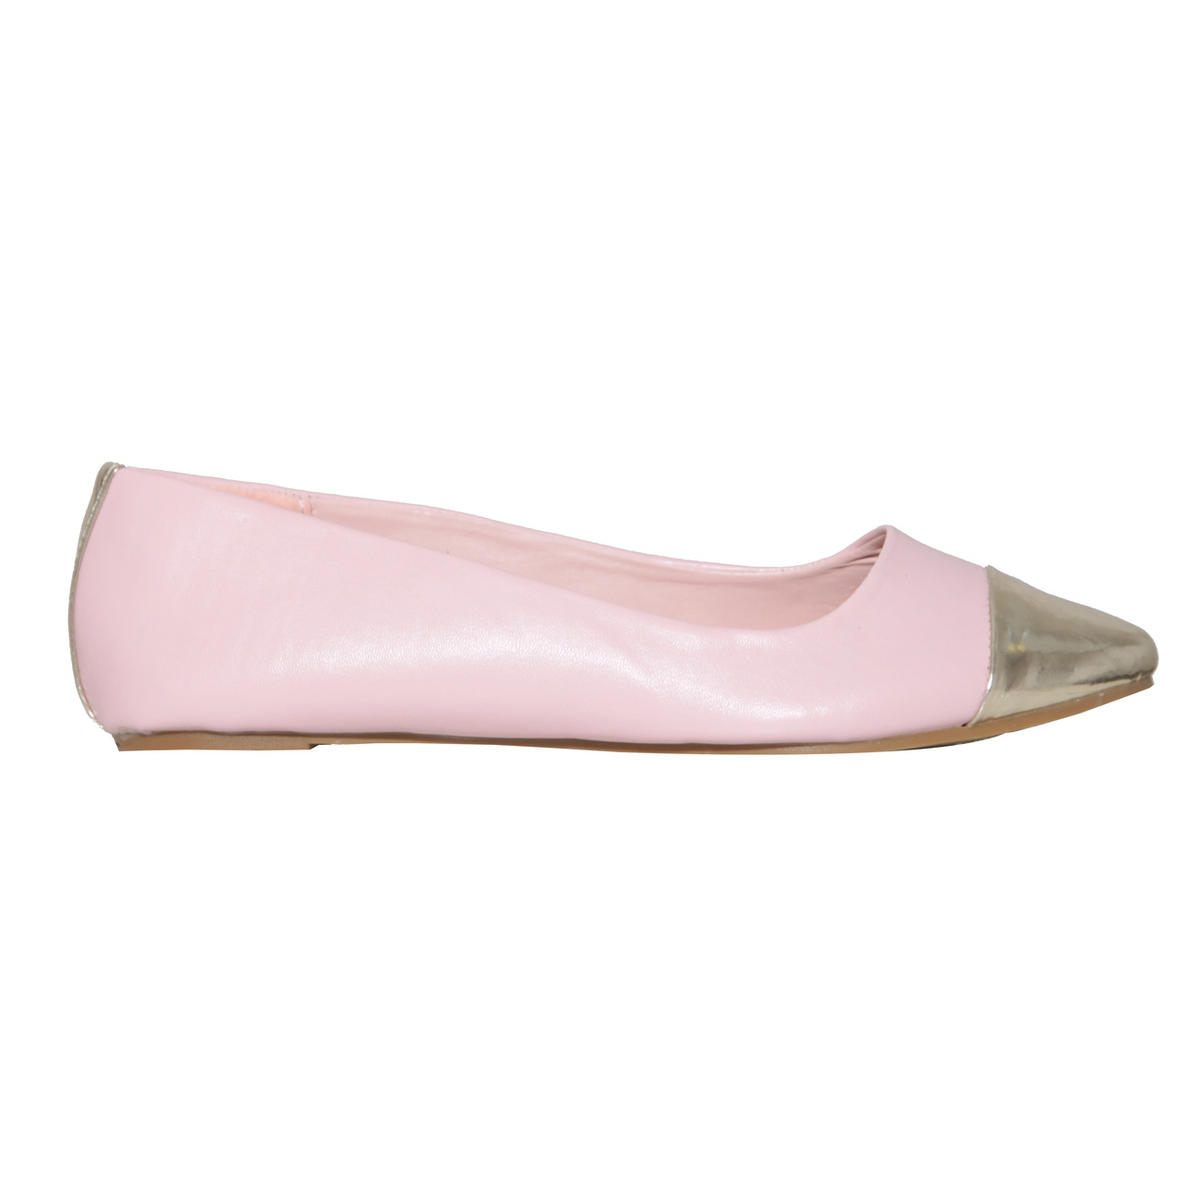 Pastel Metallic Toe Cap Flat Shoe Preview